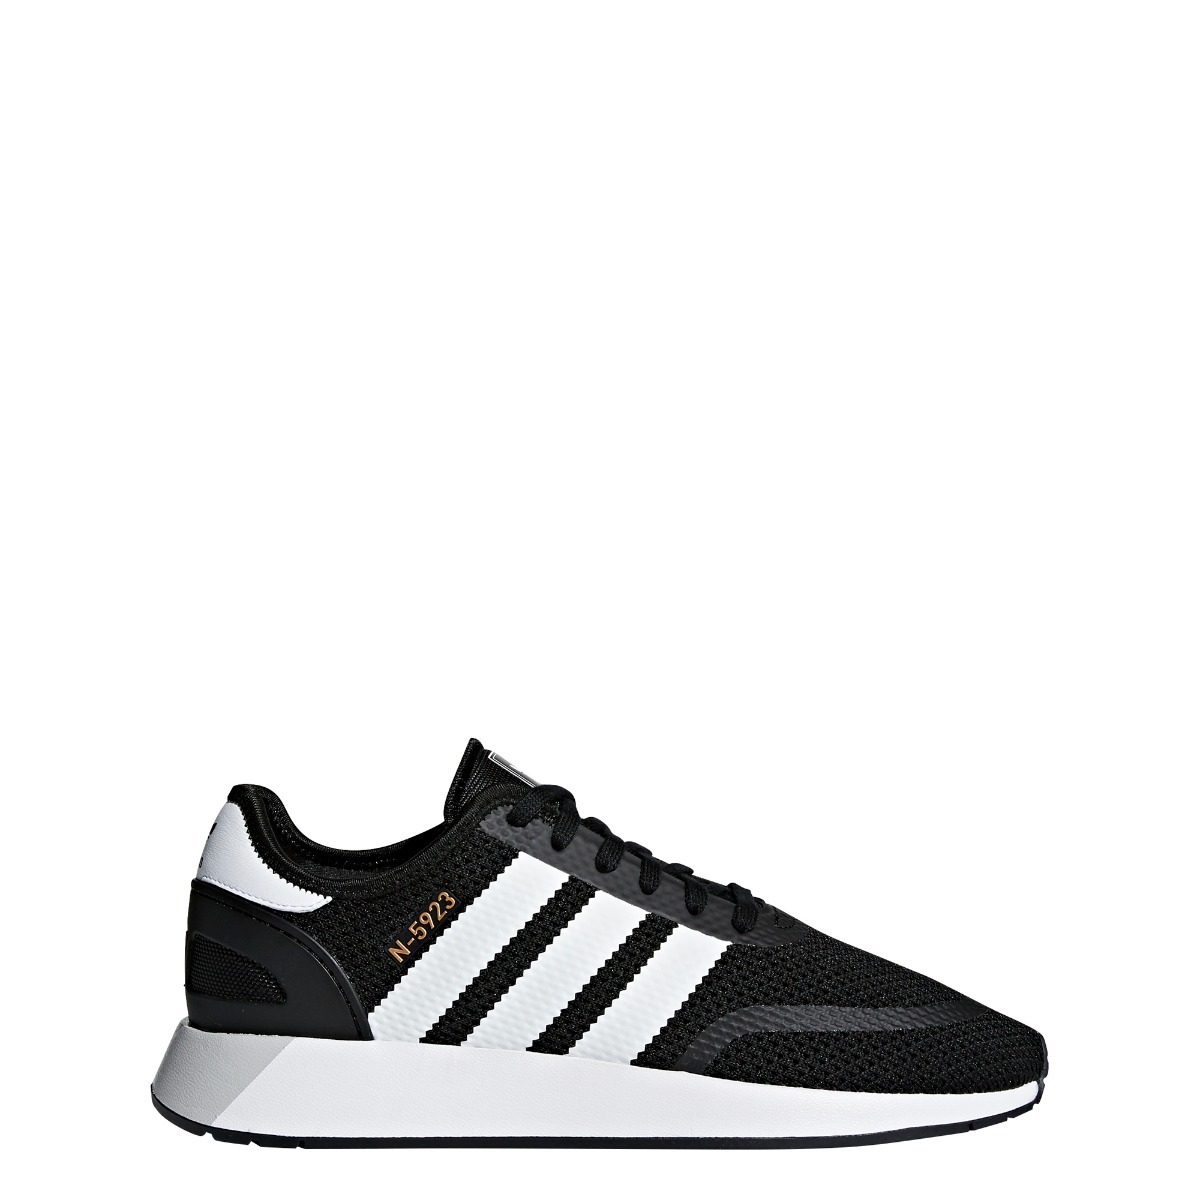 N Zugsmqvp Adidas Hommes Pour Chaussures 5923 Noir 7vY6fbgy